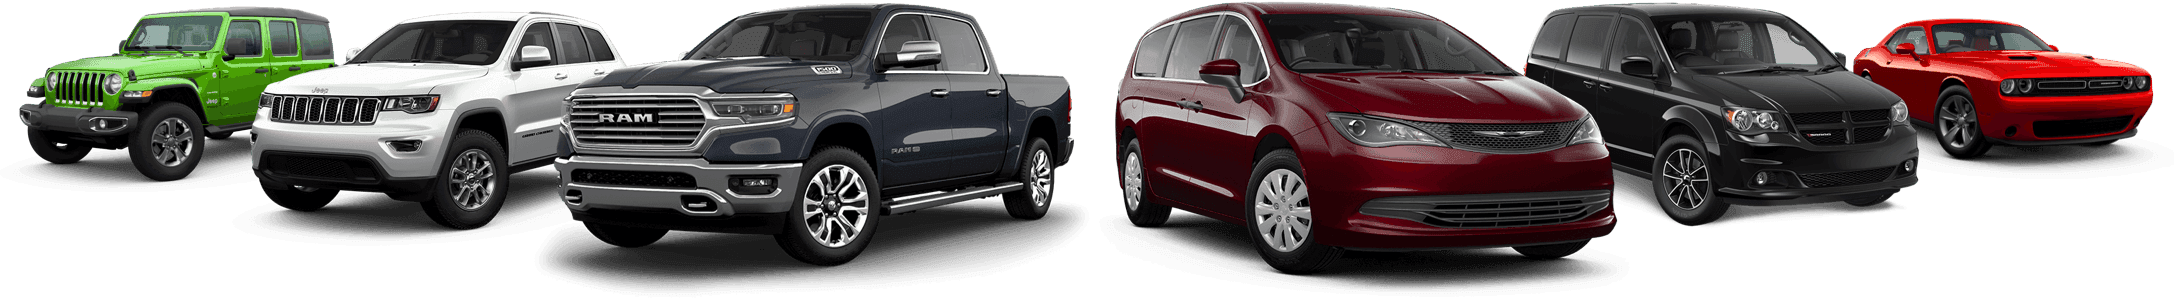 cars models for sale - Myers automotive Group